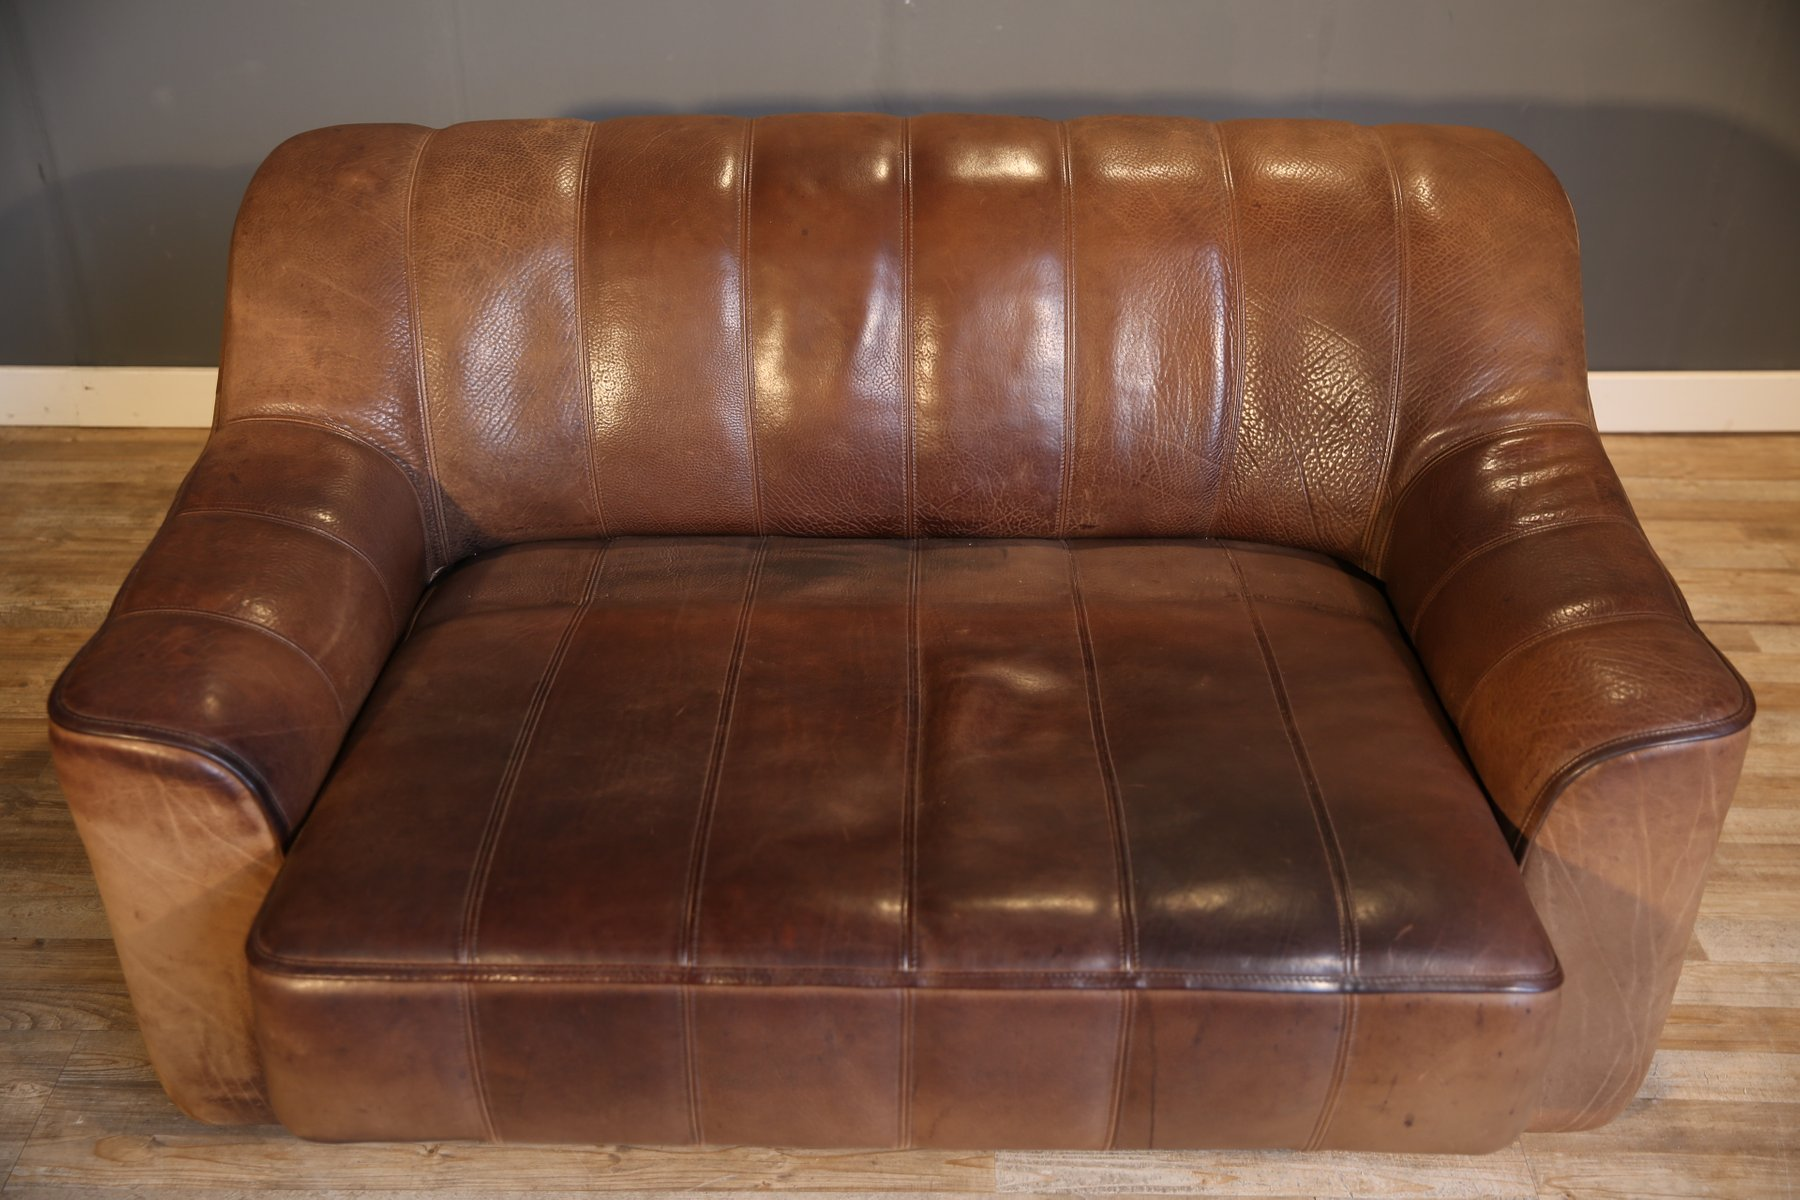 DS 44 Double Seat Leather Sofa from de Sede 1970s for sale at Pamono